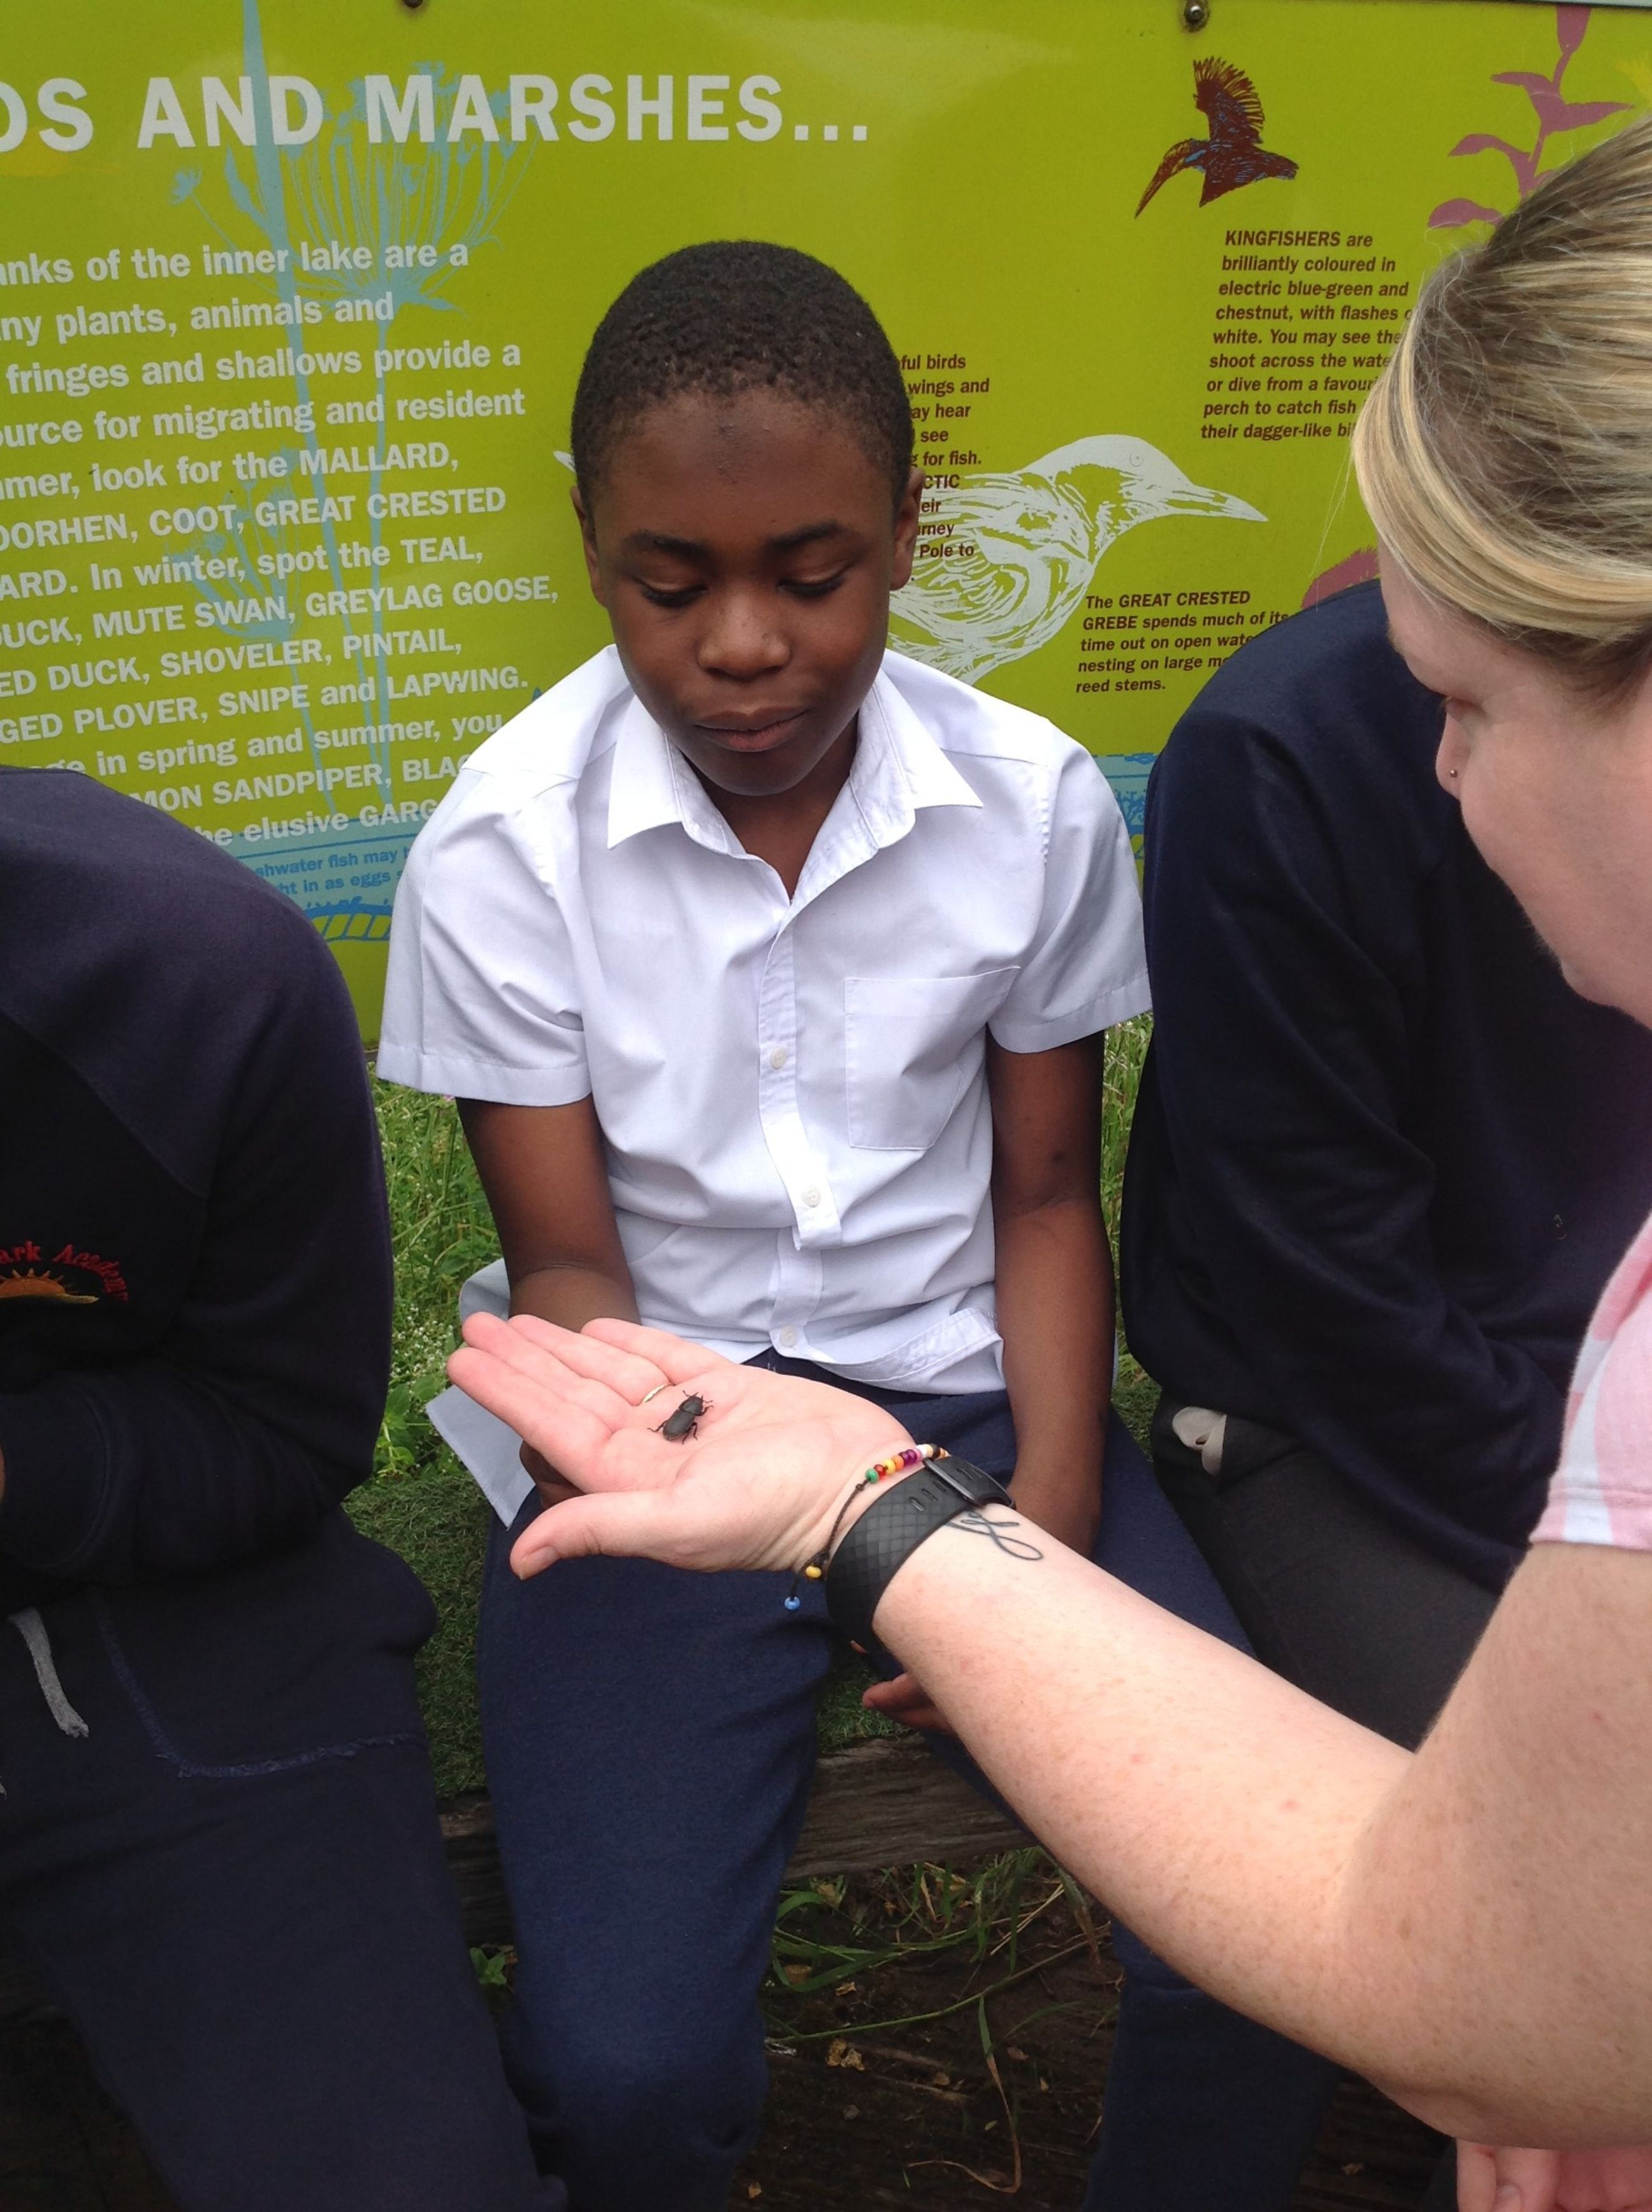 Student looking at an insect in teacher's hand